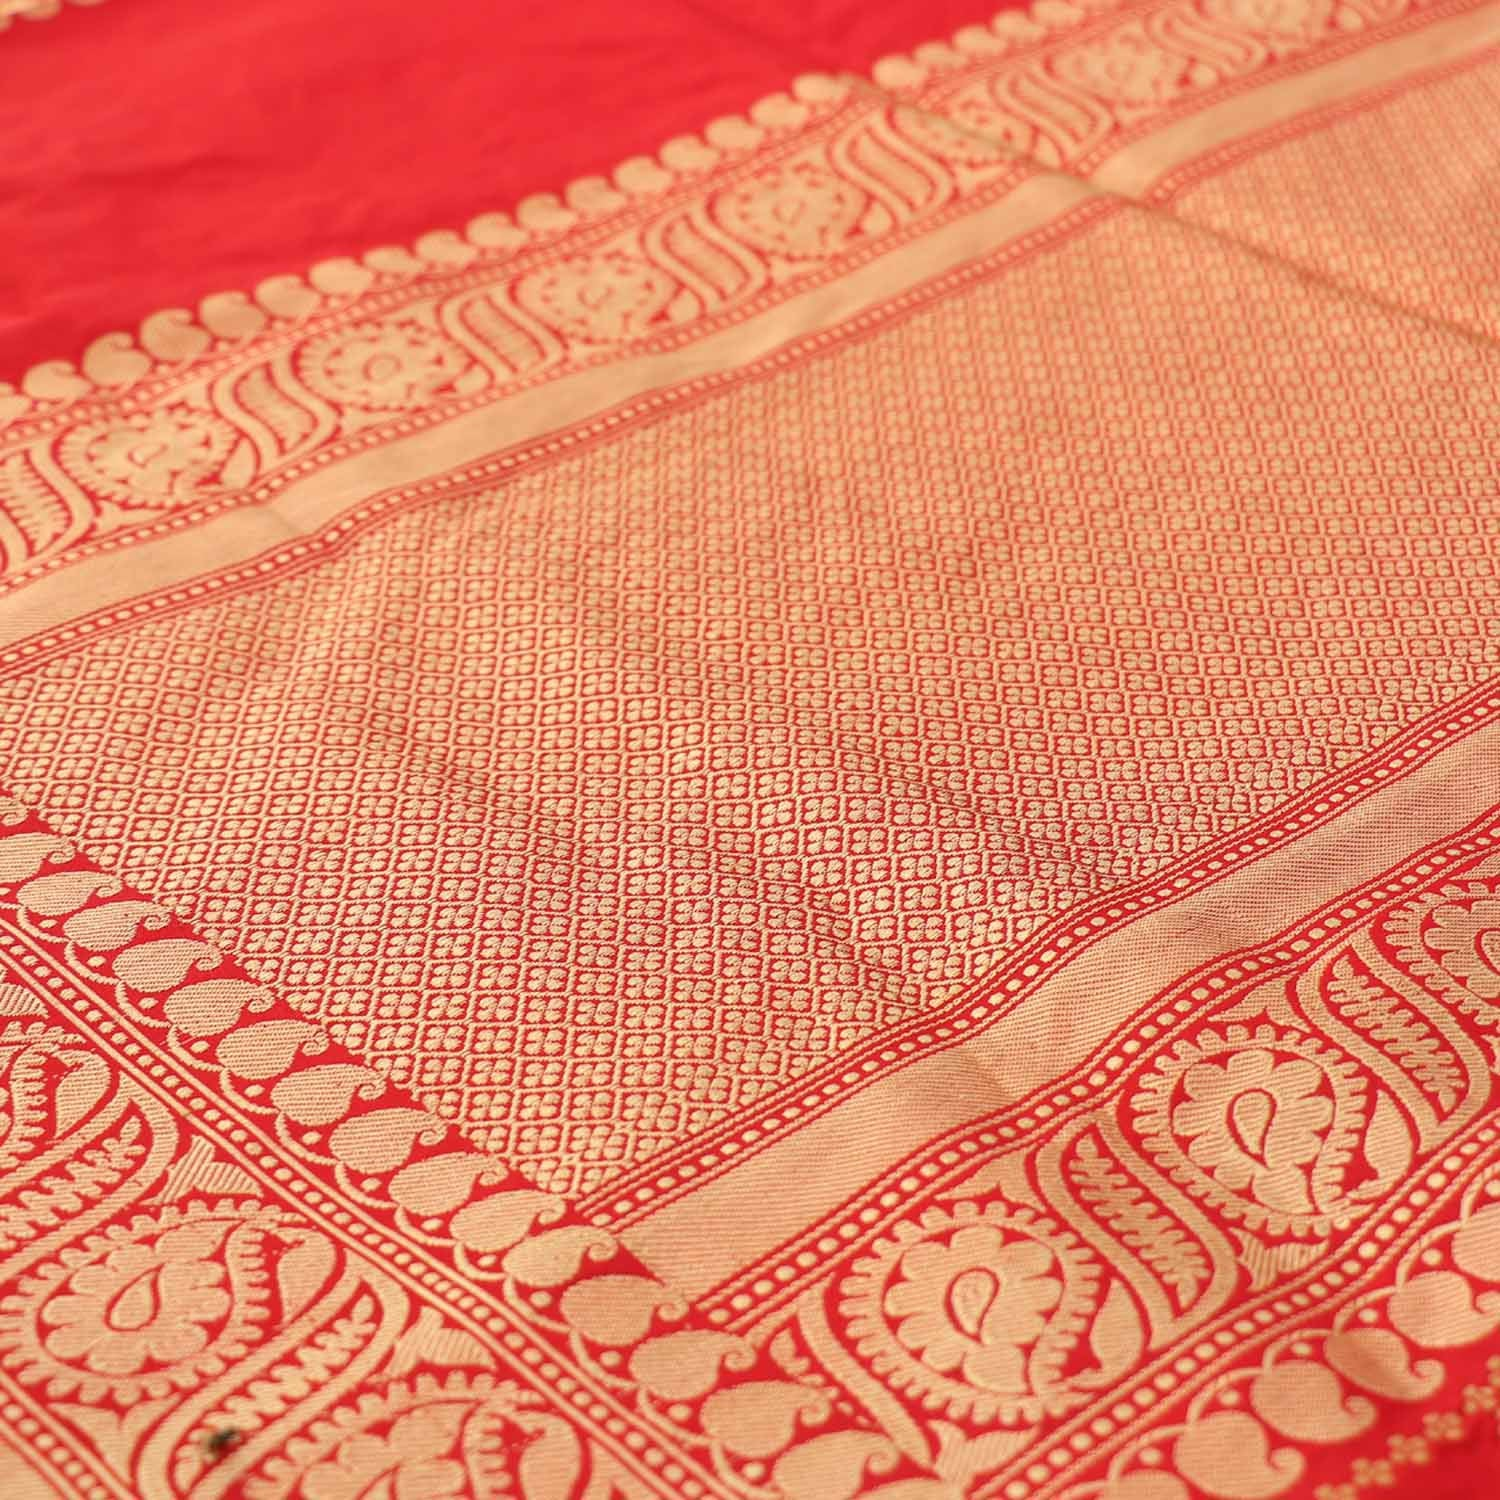 Red Pure Katan Silk Banarasi Handloom Saree - Tilfi - 2